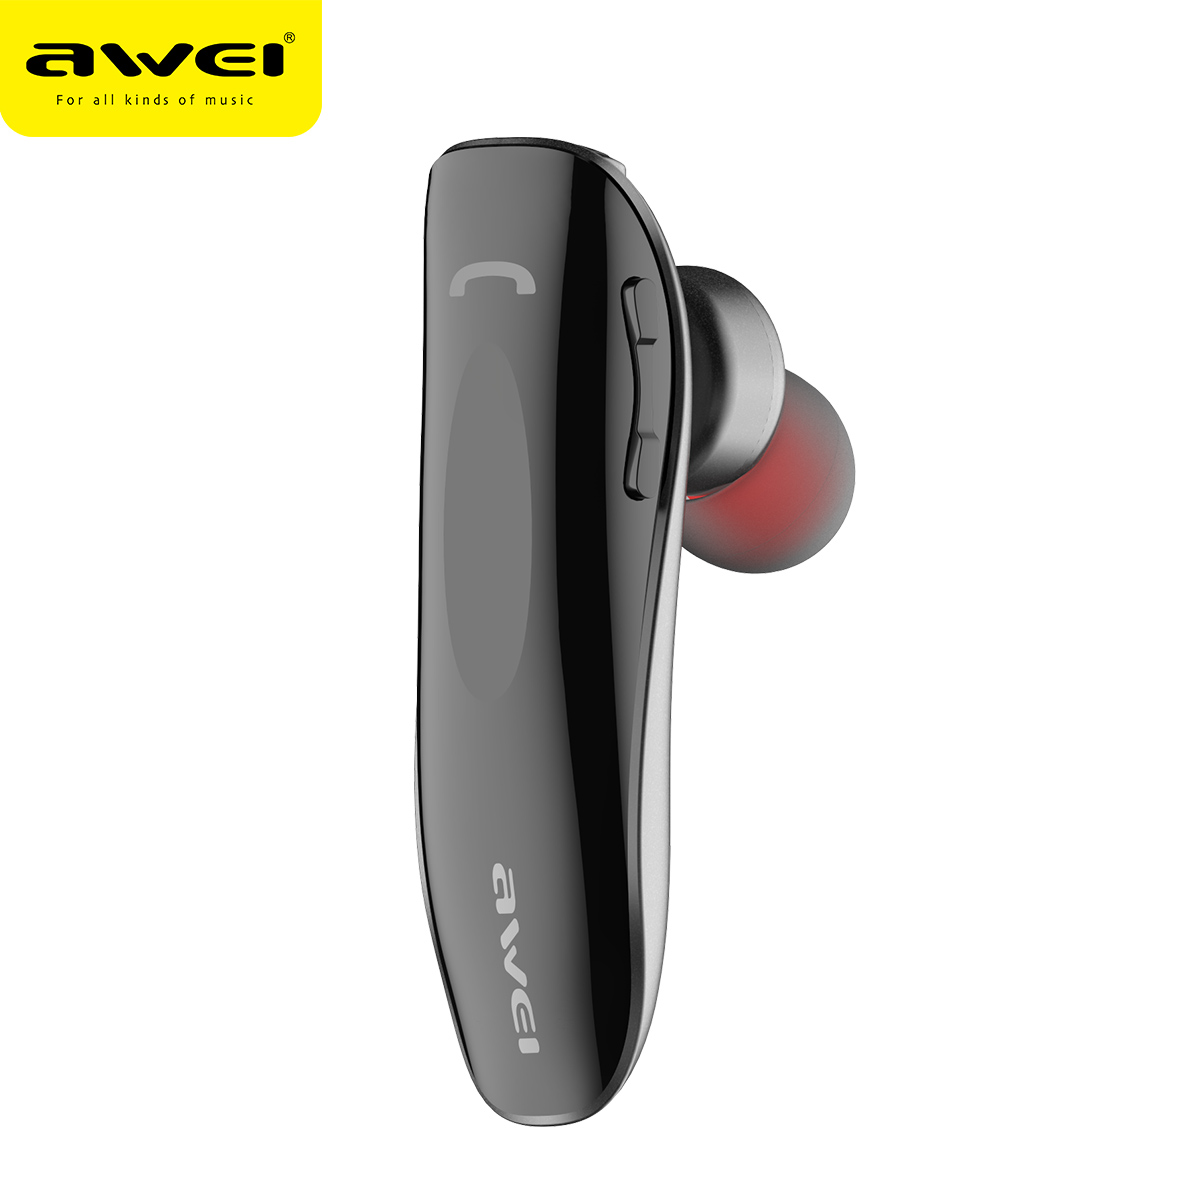 AWEI N1 Bluetooth Earphone Wireless Headphones cordless Mini Business Portable Headset for phone Auriculares Fone de ouvido awei ak7 wireless headphone bluetooth earphone for phone fone de ouvido sport headset cordless earpiece kulakl k headfone